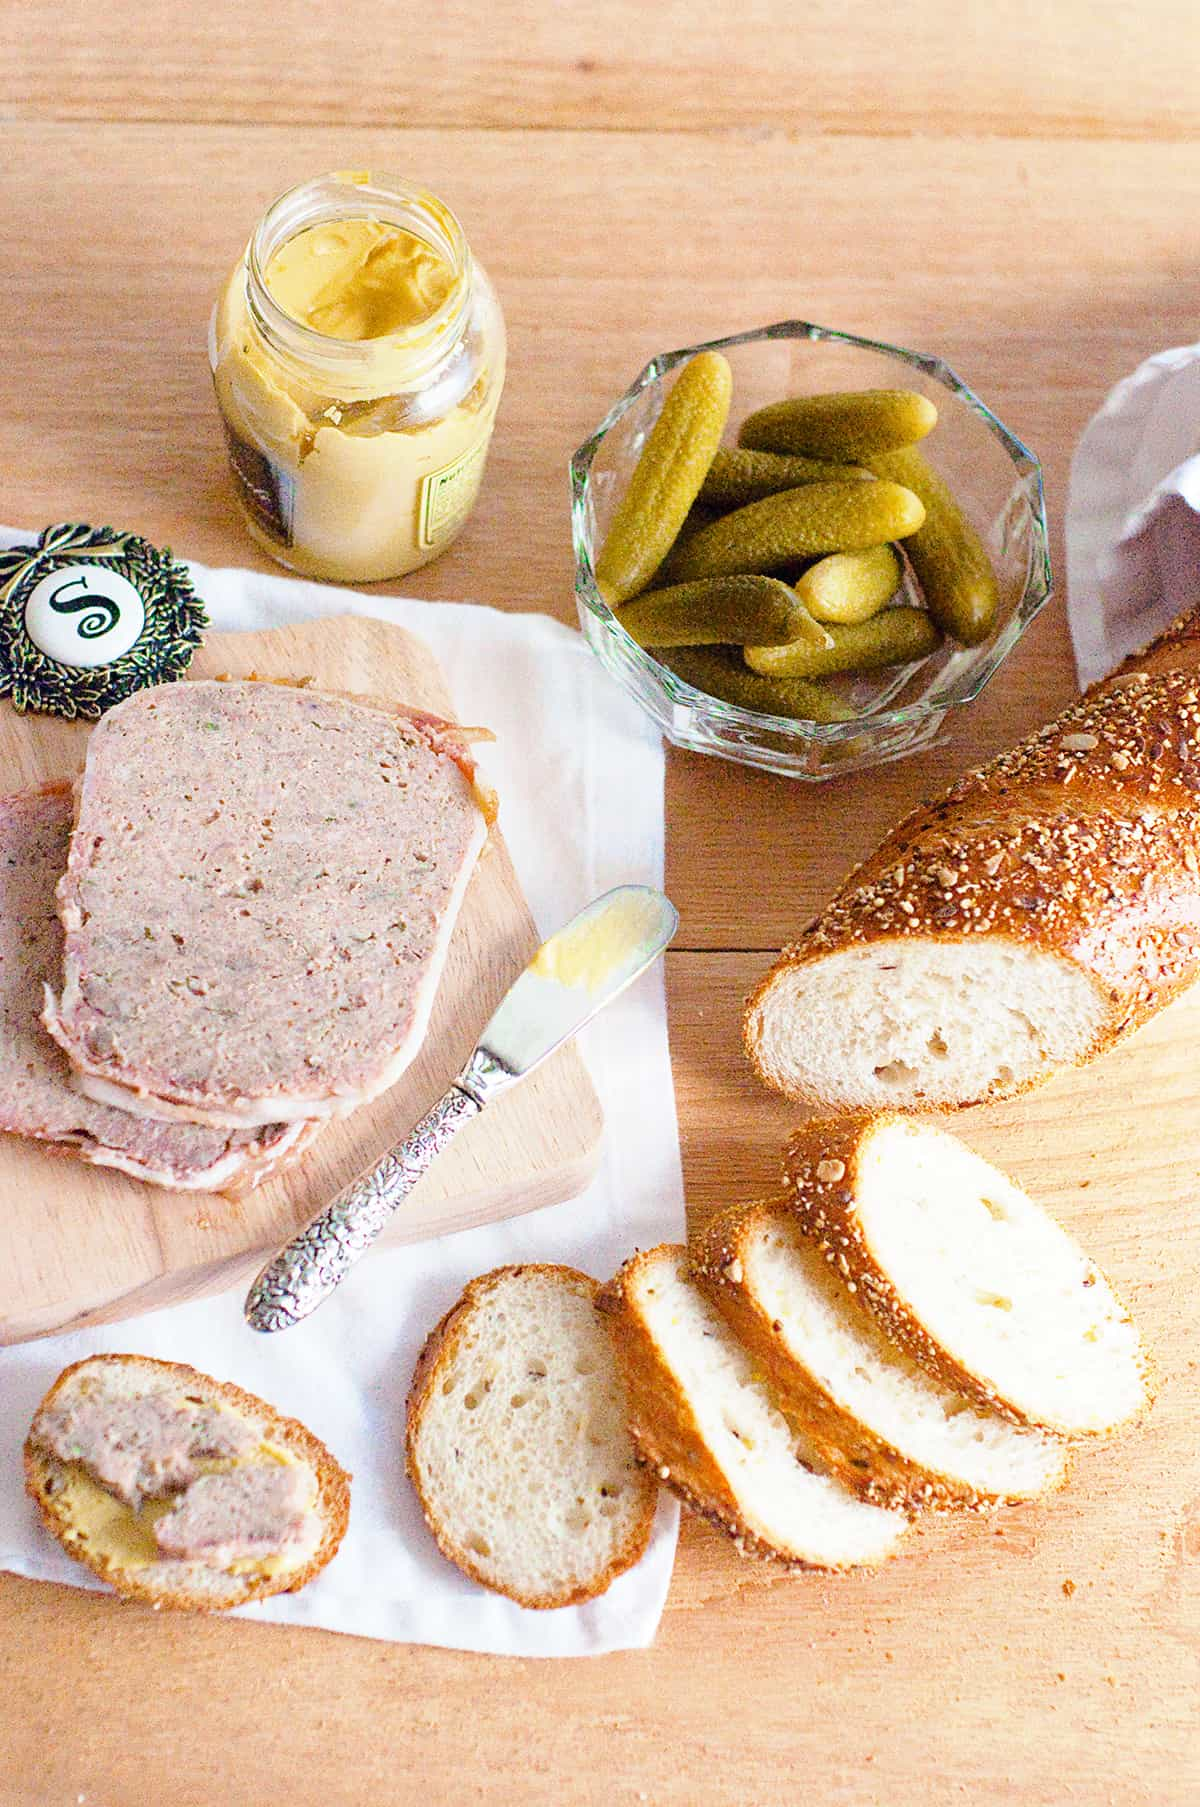 Sliced French country terrine on a serving board with sliced baguette, cornichons, and mustard.